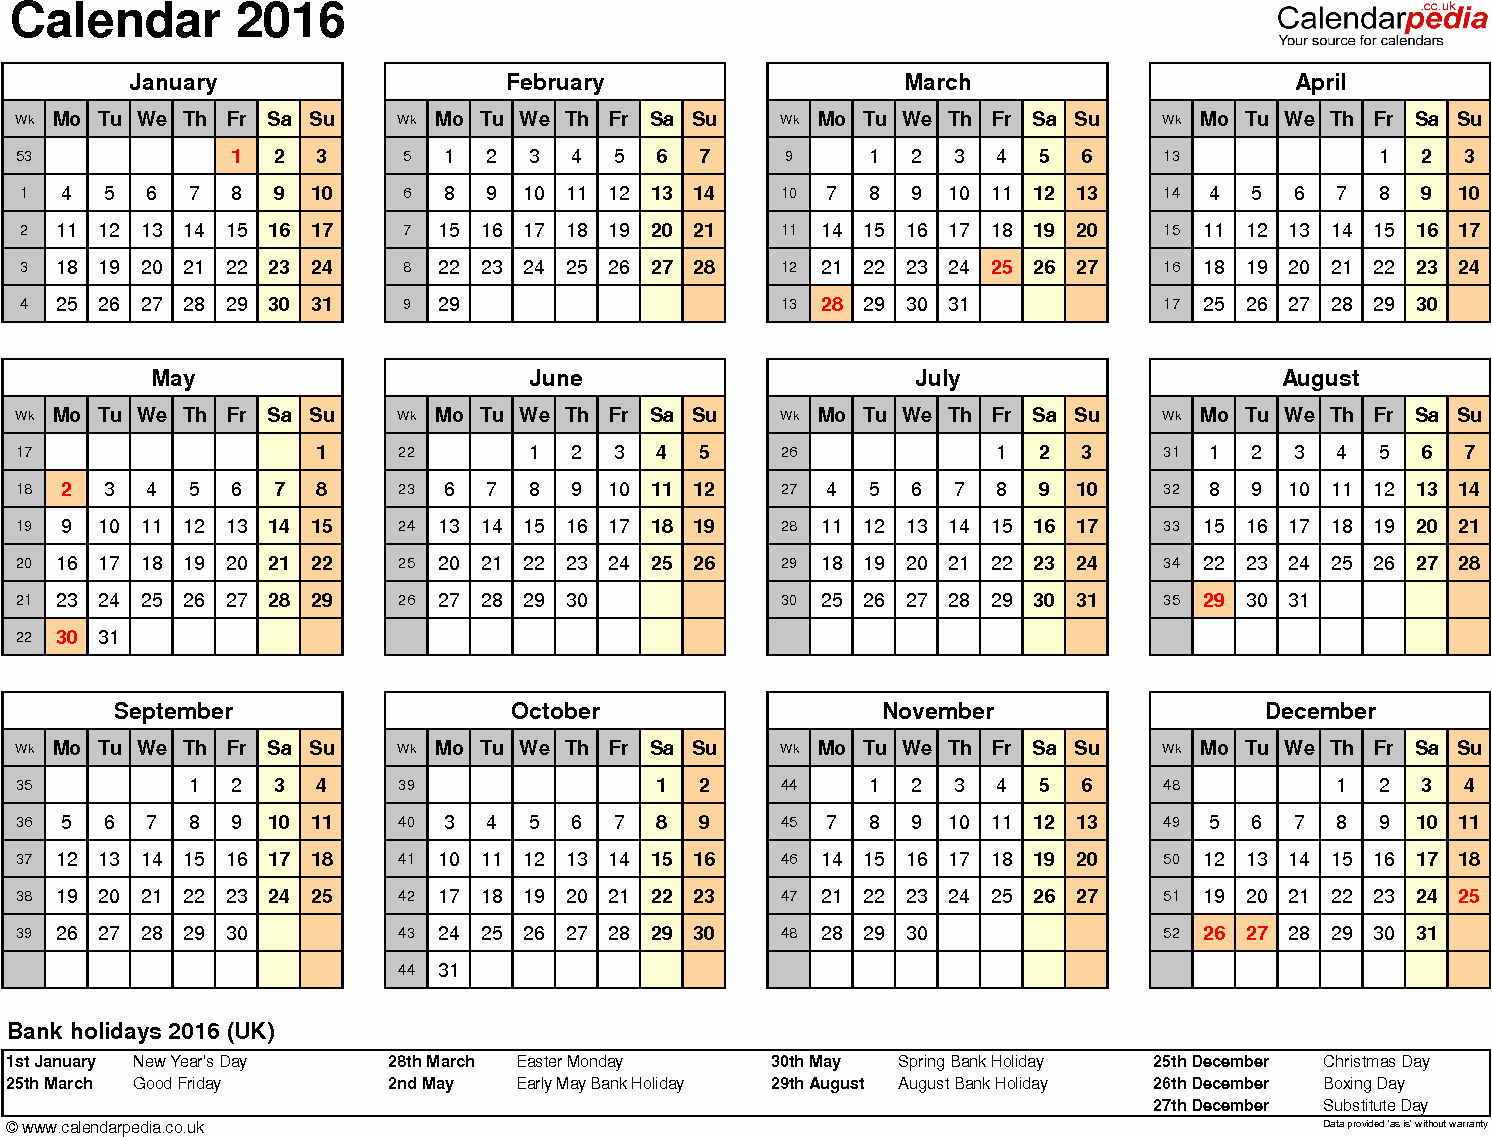 Calendar Templates for Ms Word Fresh Calendar 2016 Uk 16 Free Printable Word Templates